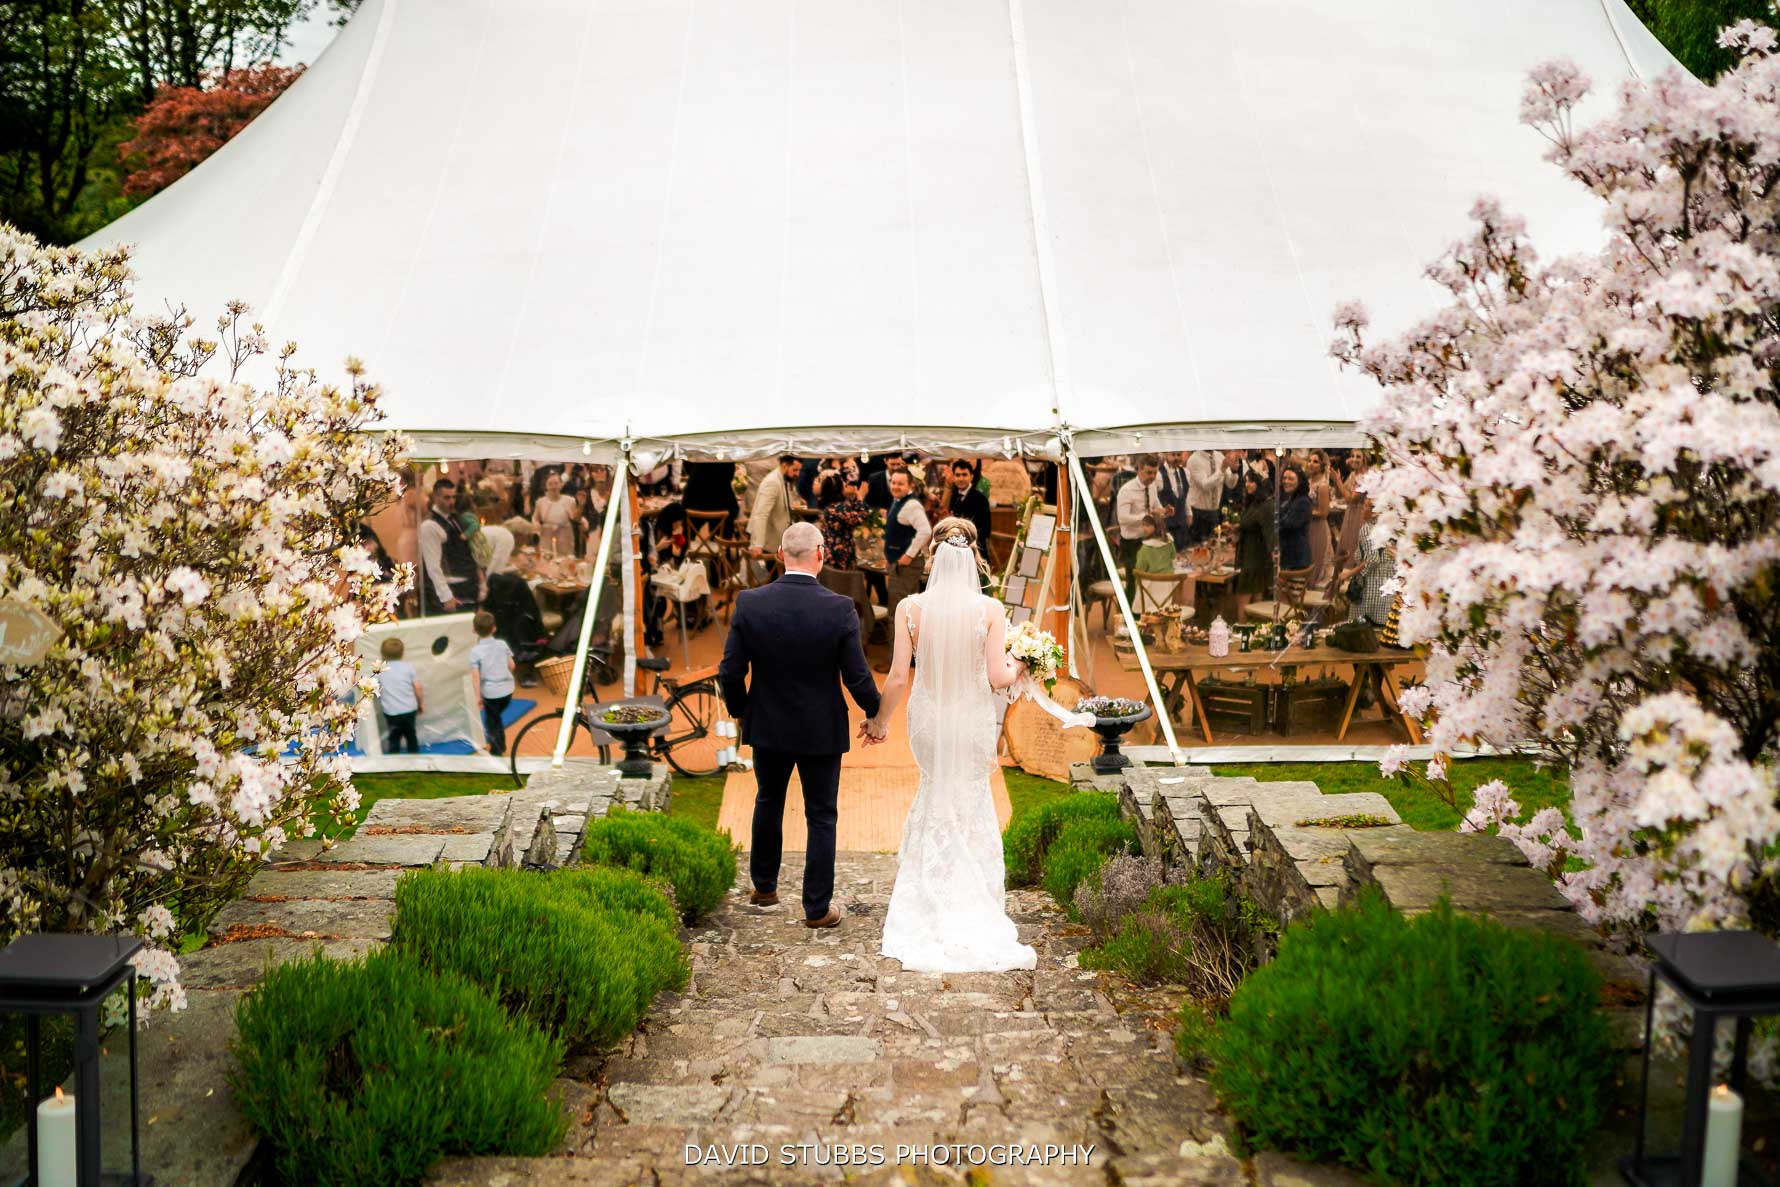 entering the tipi or marquee